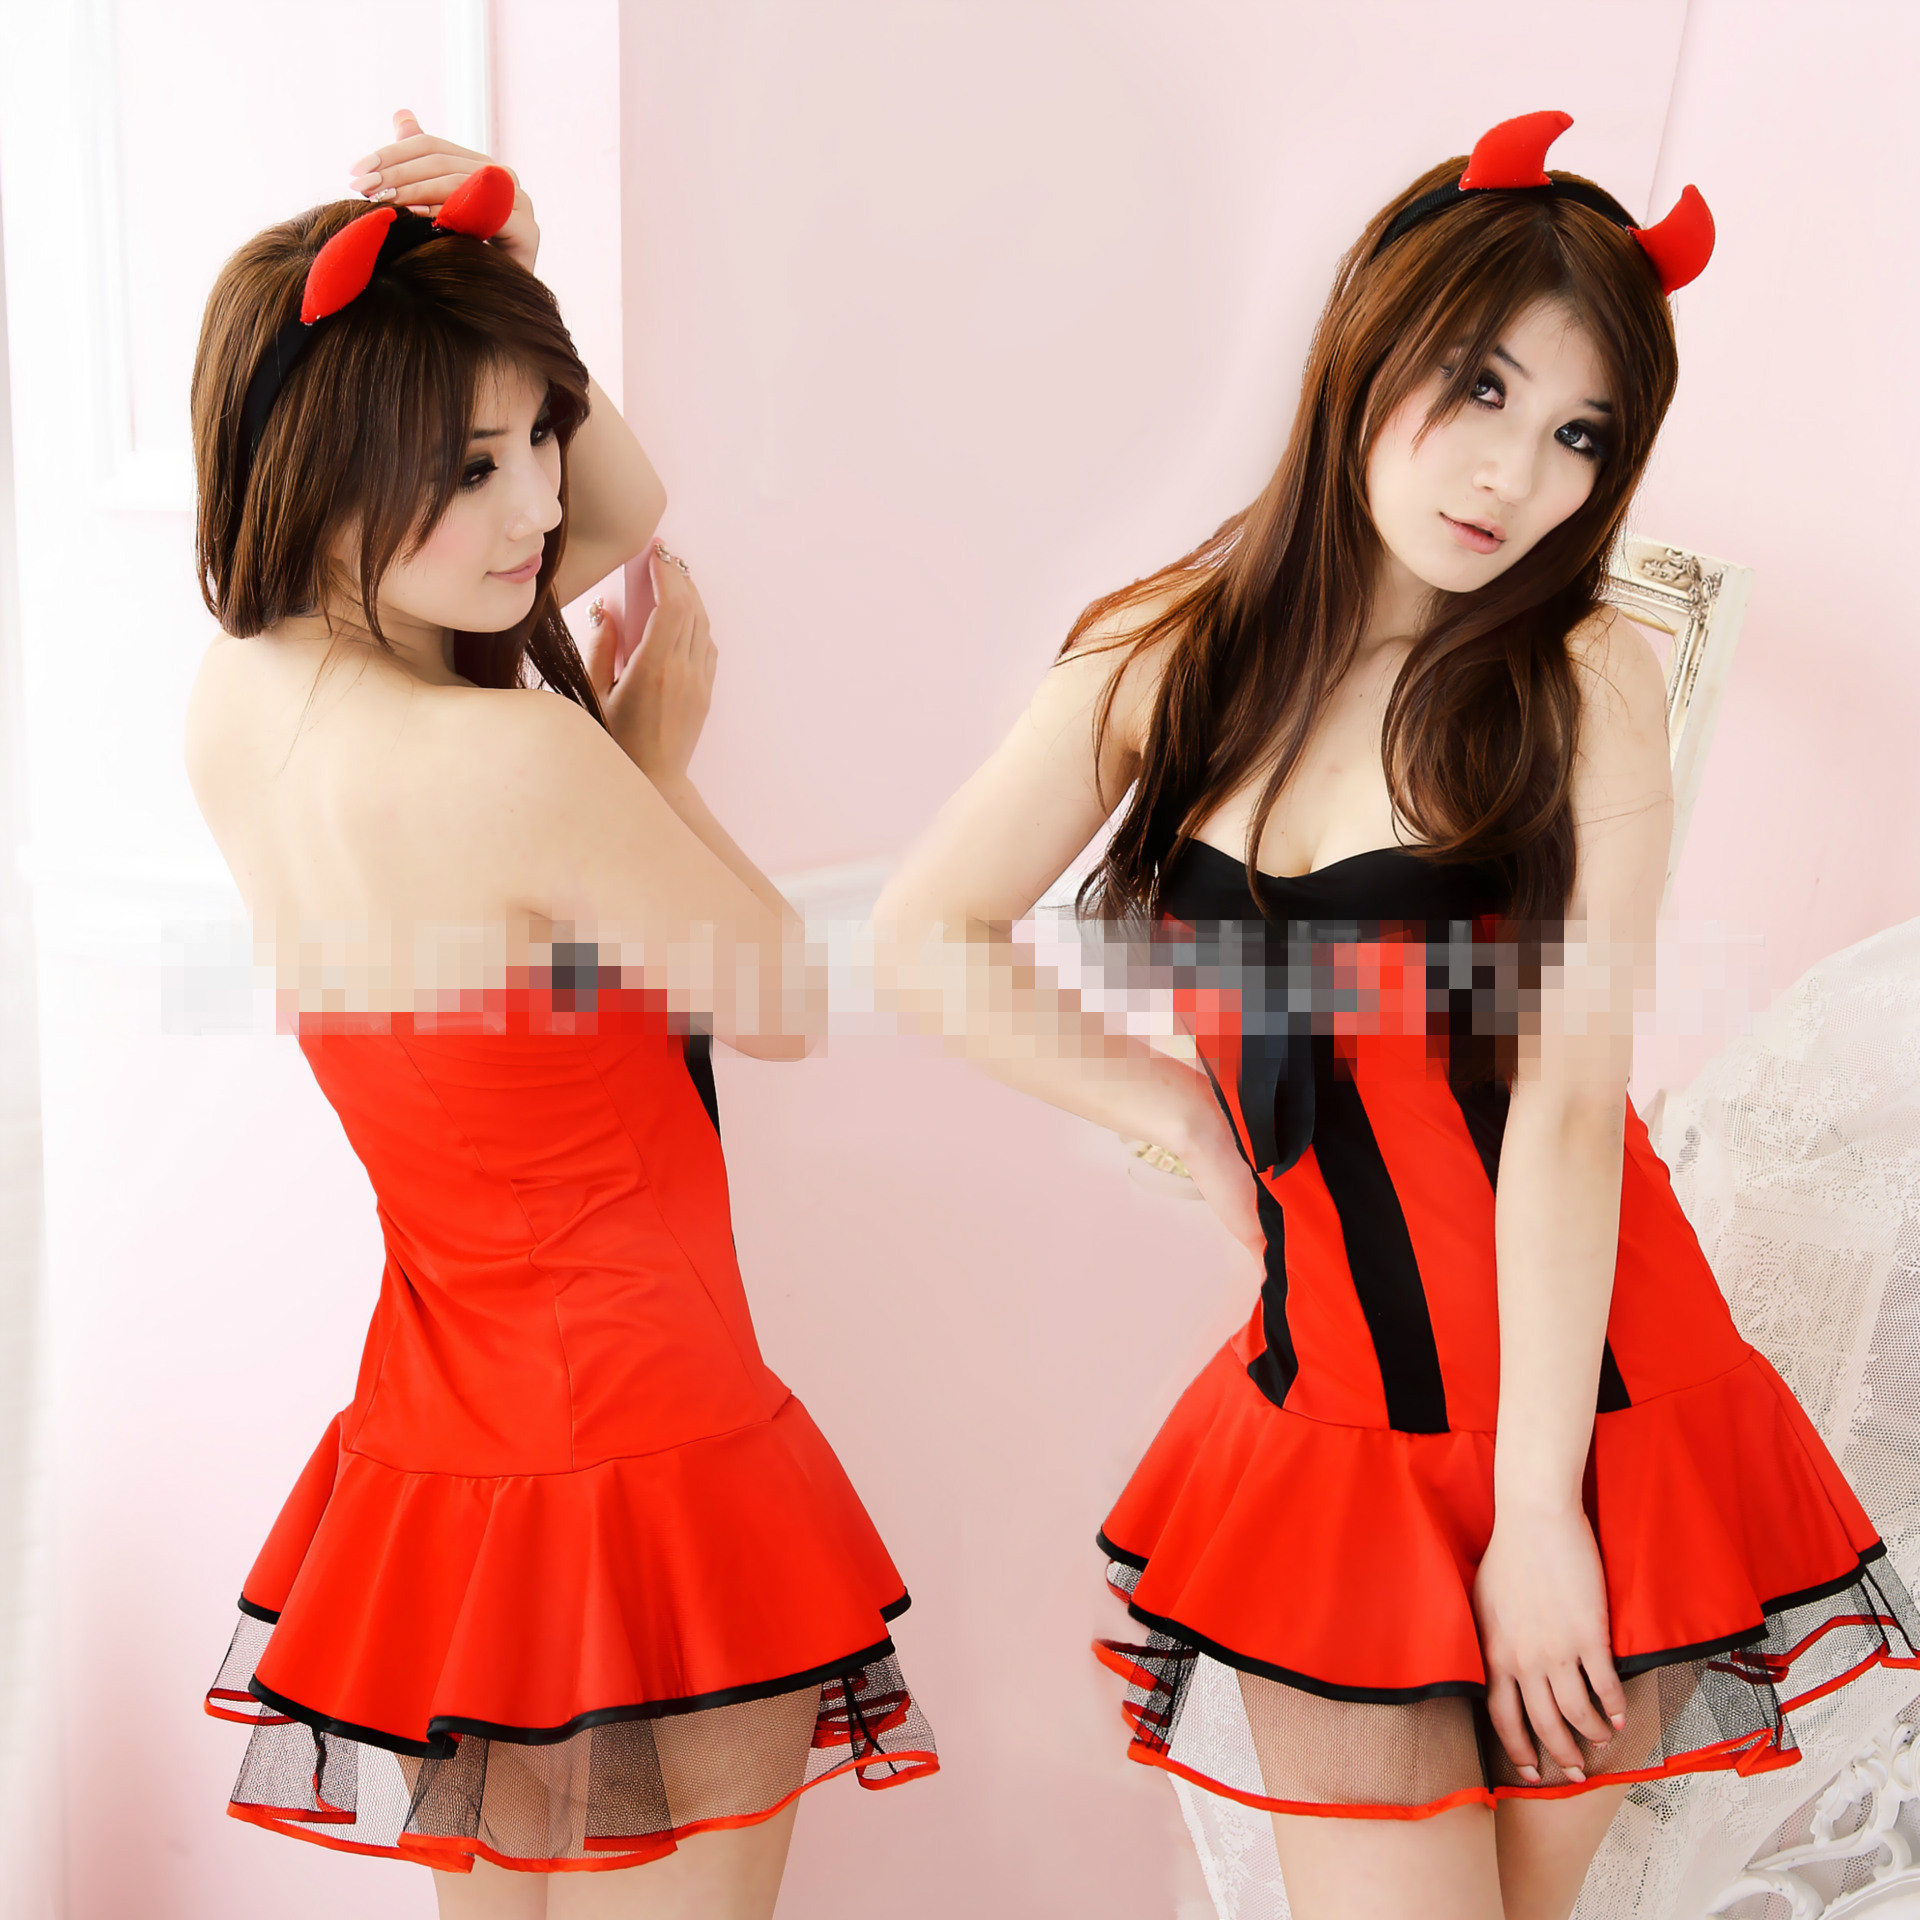 <font><b>Sexy</b></font> Costumes 2017 Female <font><b>Disfraces</b></font> <font><b>Halloween</b></font> <font><b>Sexy</b></font> Naughty Girl Cosplay Costumes Devil and Demon Role Play Dress Europe Vampire image